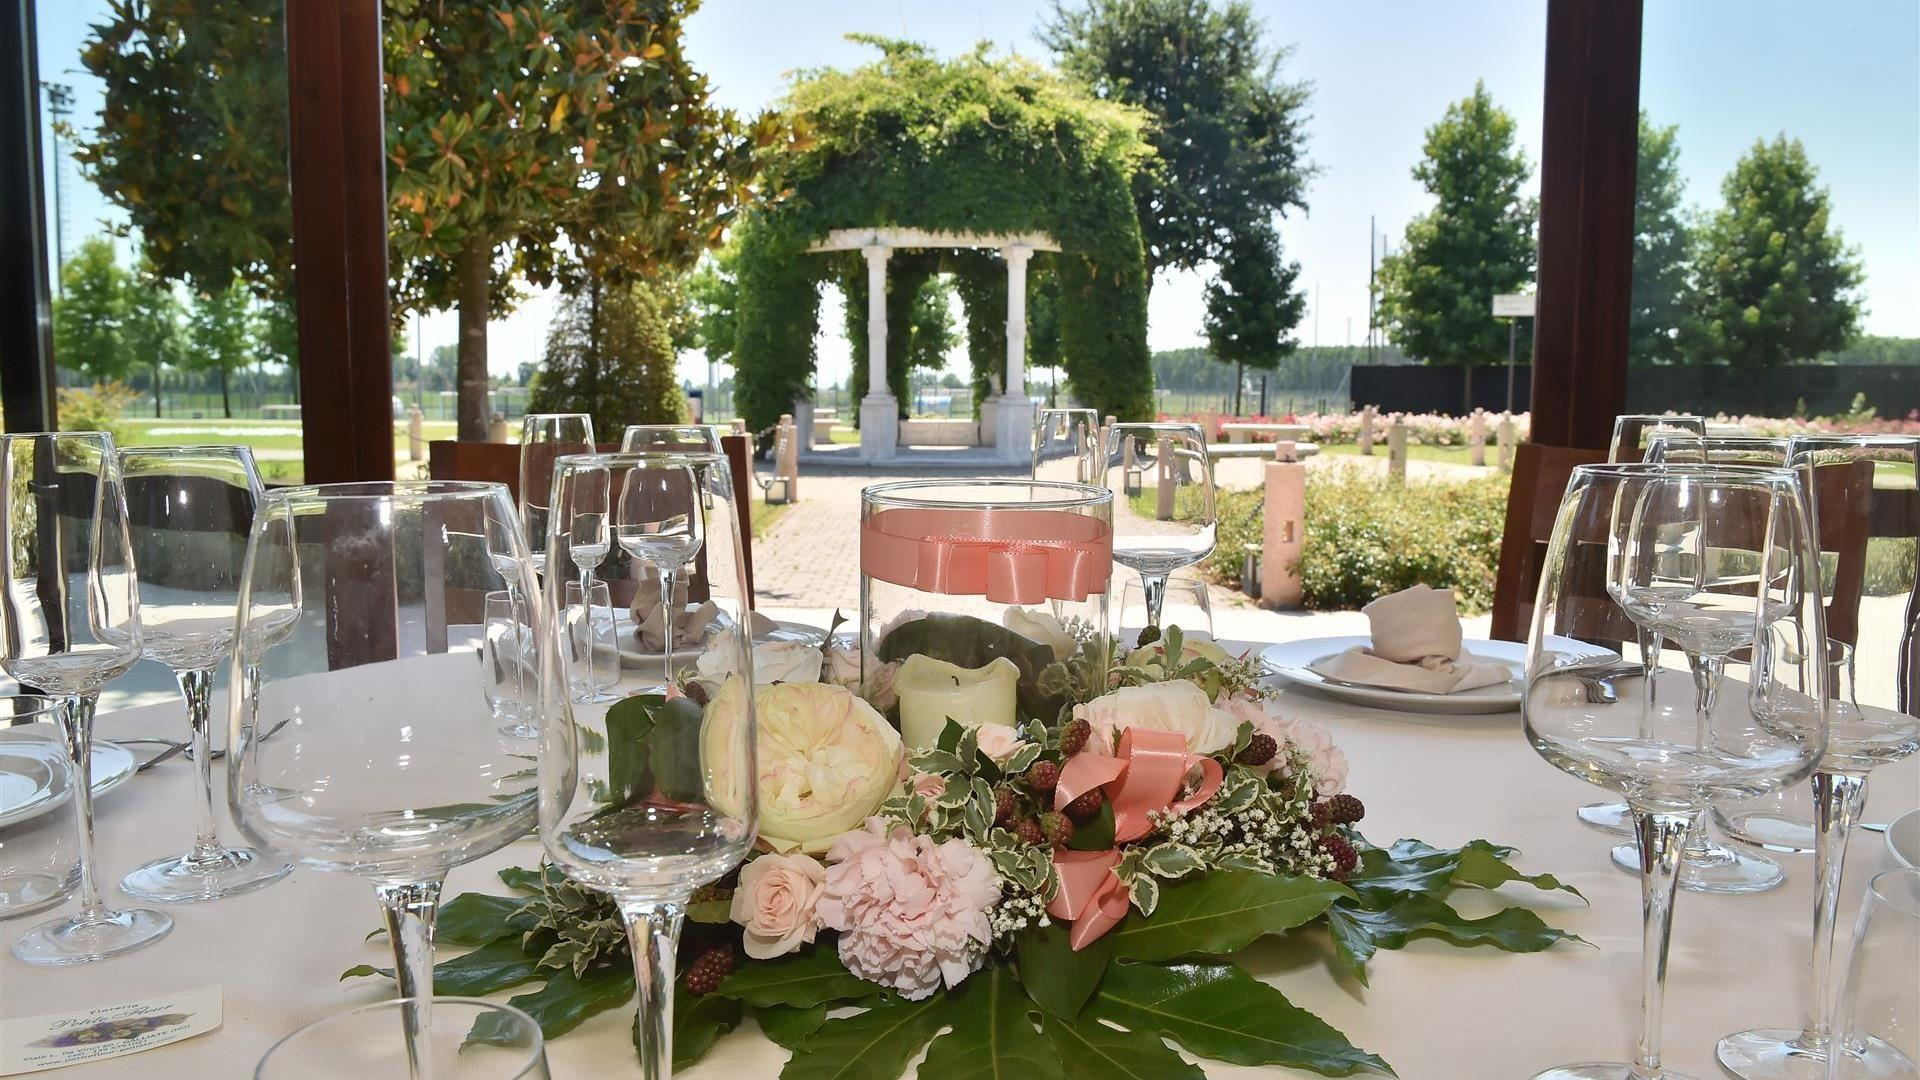 Location Matrimonio Rustico Piemonte : Location per matrimoni in piemonte le migliori del